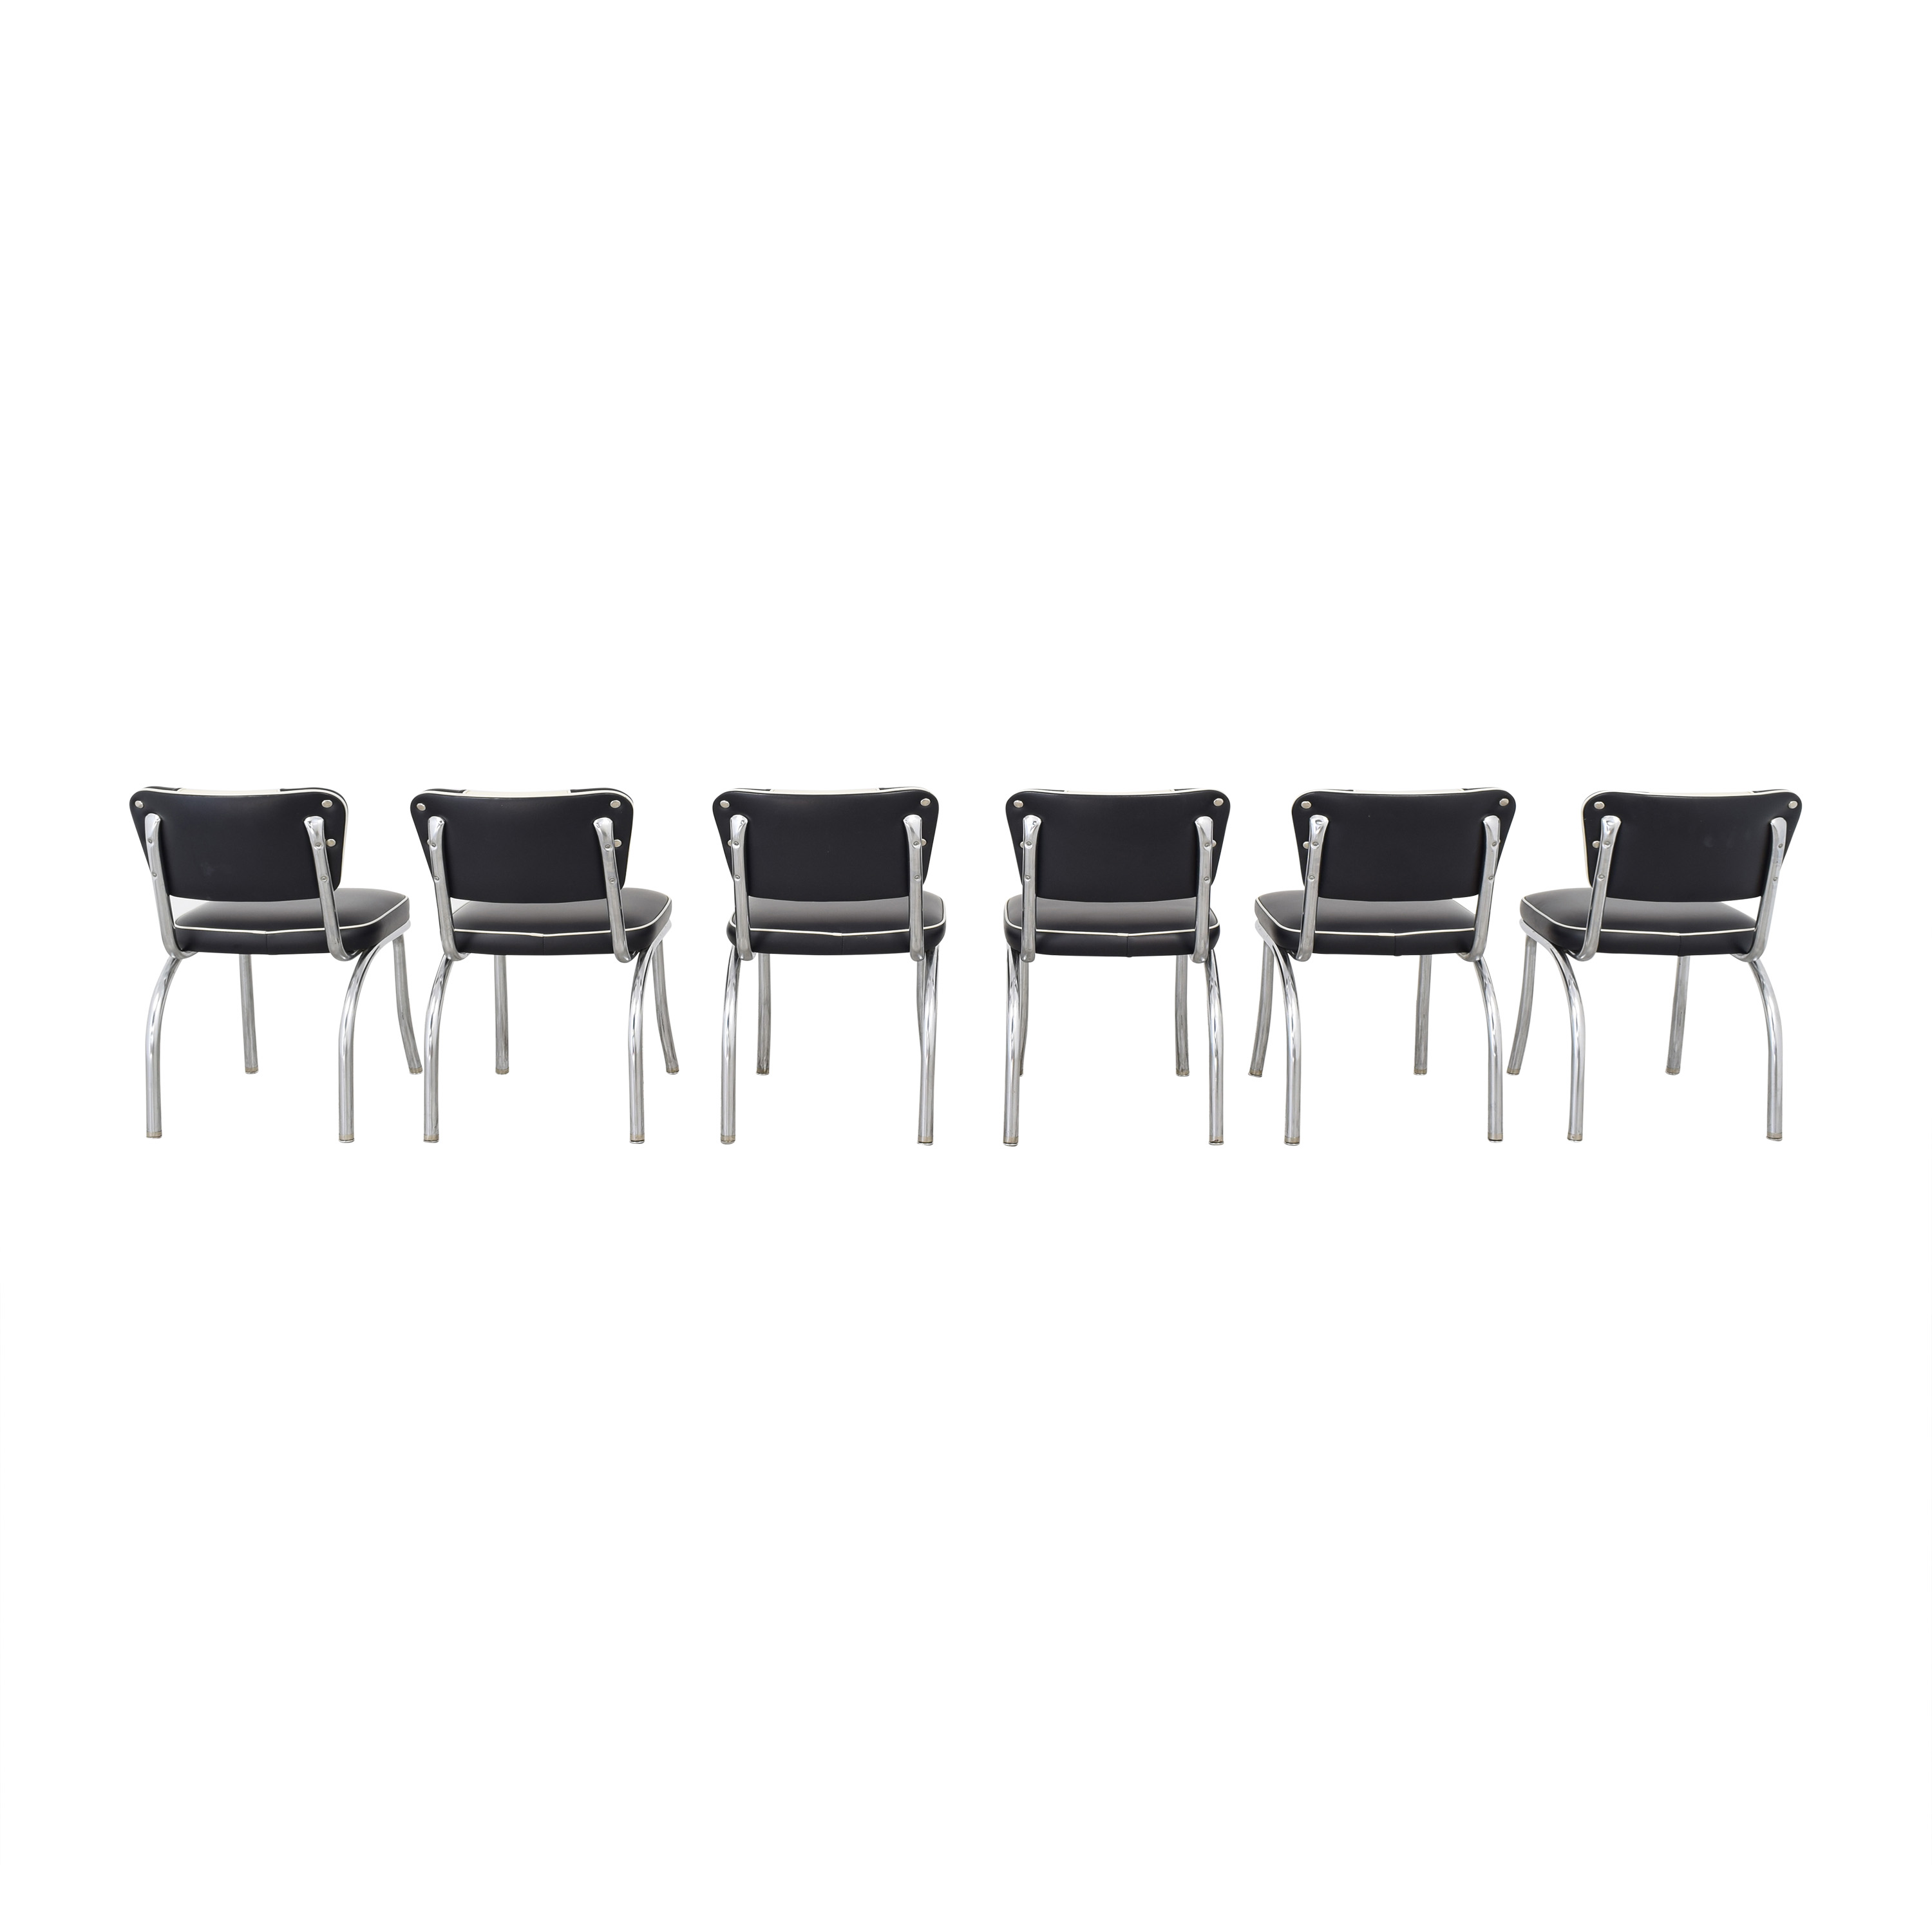 Richardson Seating Corp Richardson Seating Classic Diner Chair discount